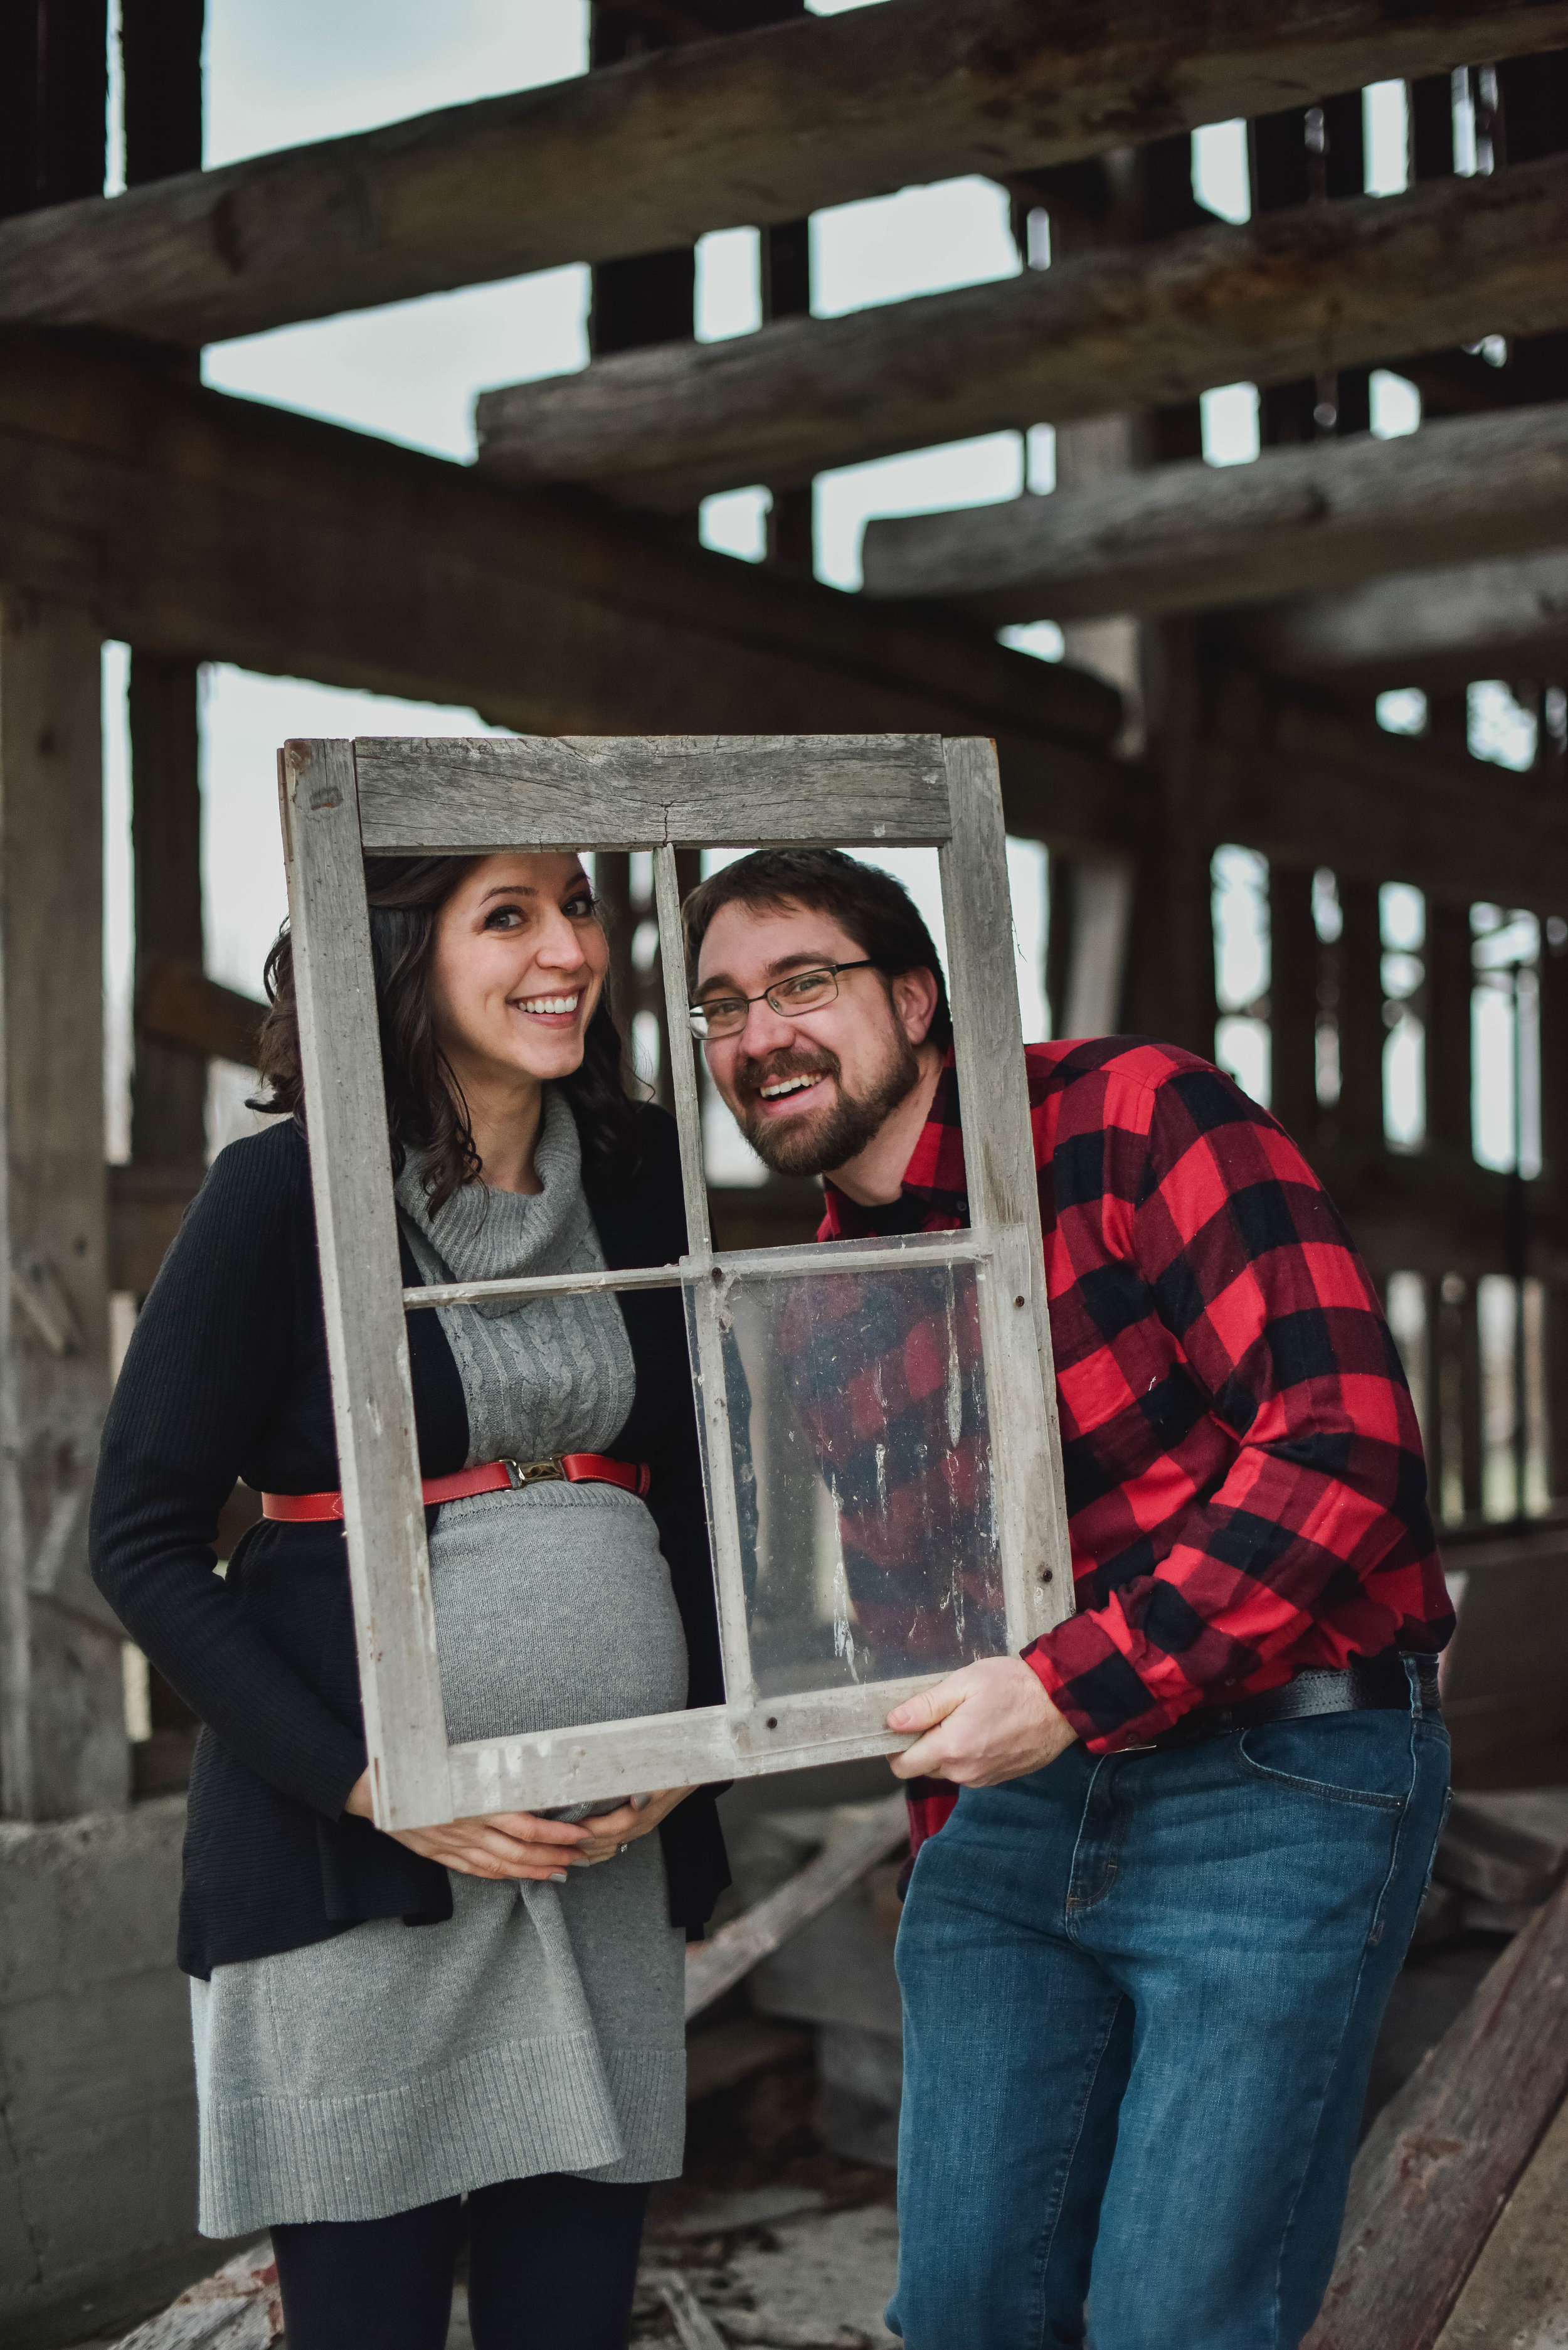 Thanks again you two for allowing me to photograph such an important time in your lives! I hope you enjoy them as much as I do and I can't wait to see your little one soon!